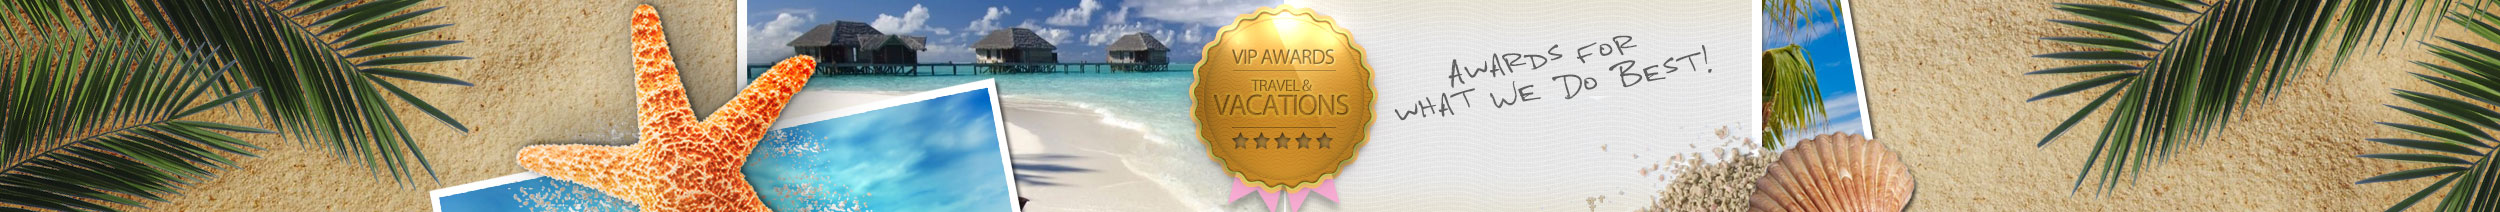 VIP Vacations Becomes WOW Specialists for the Hard Rock Resorts and Colin Cowie Wedding Collections